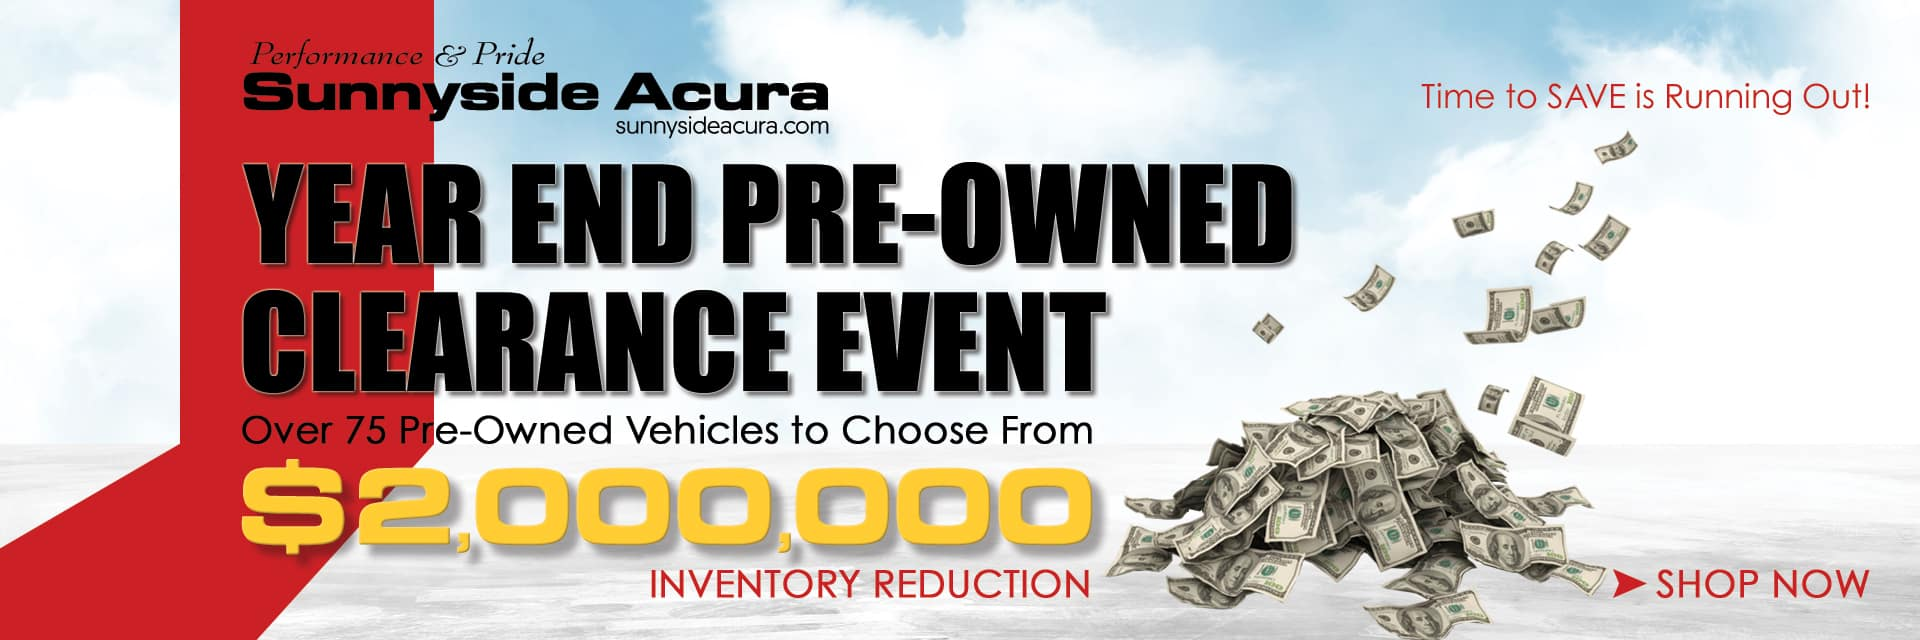 Sunnyside Acura Year End Pre-Owned Clearance Event Nashua NH 03063